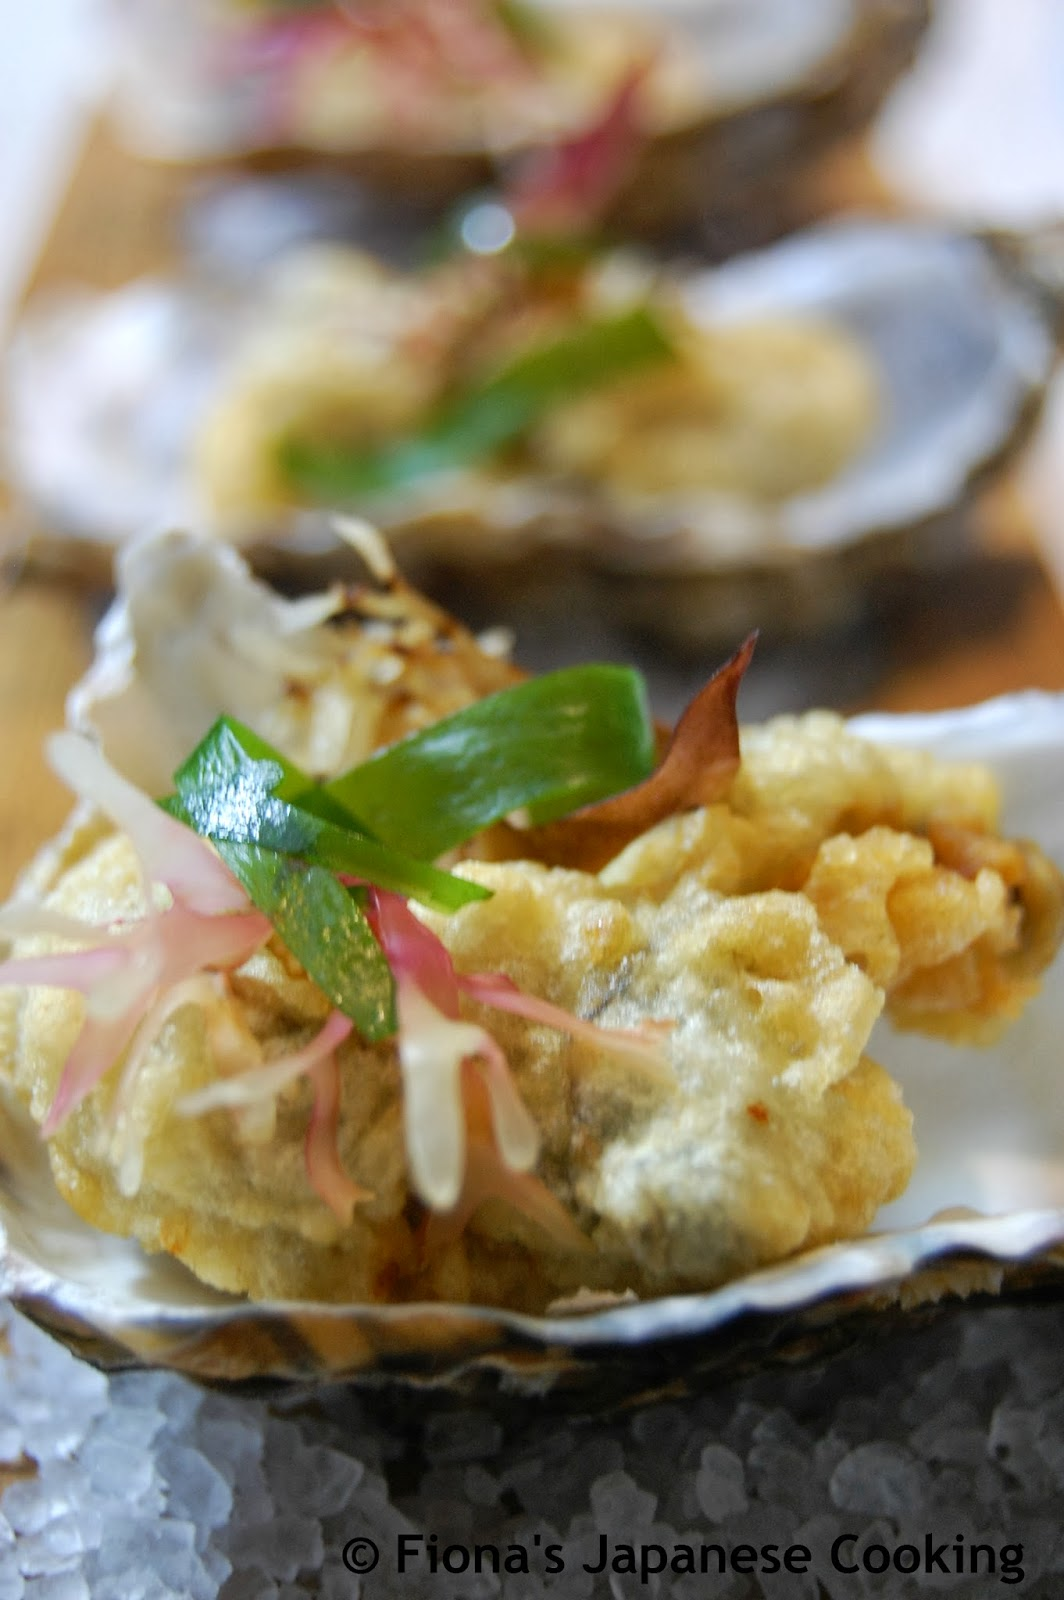 Fionas japanese cooking oyster tempura recipe oyster tempura recipe forumfinder Gallery